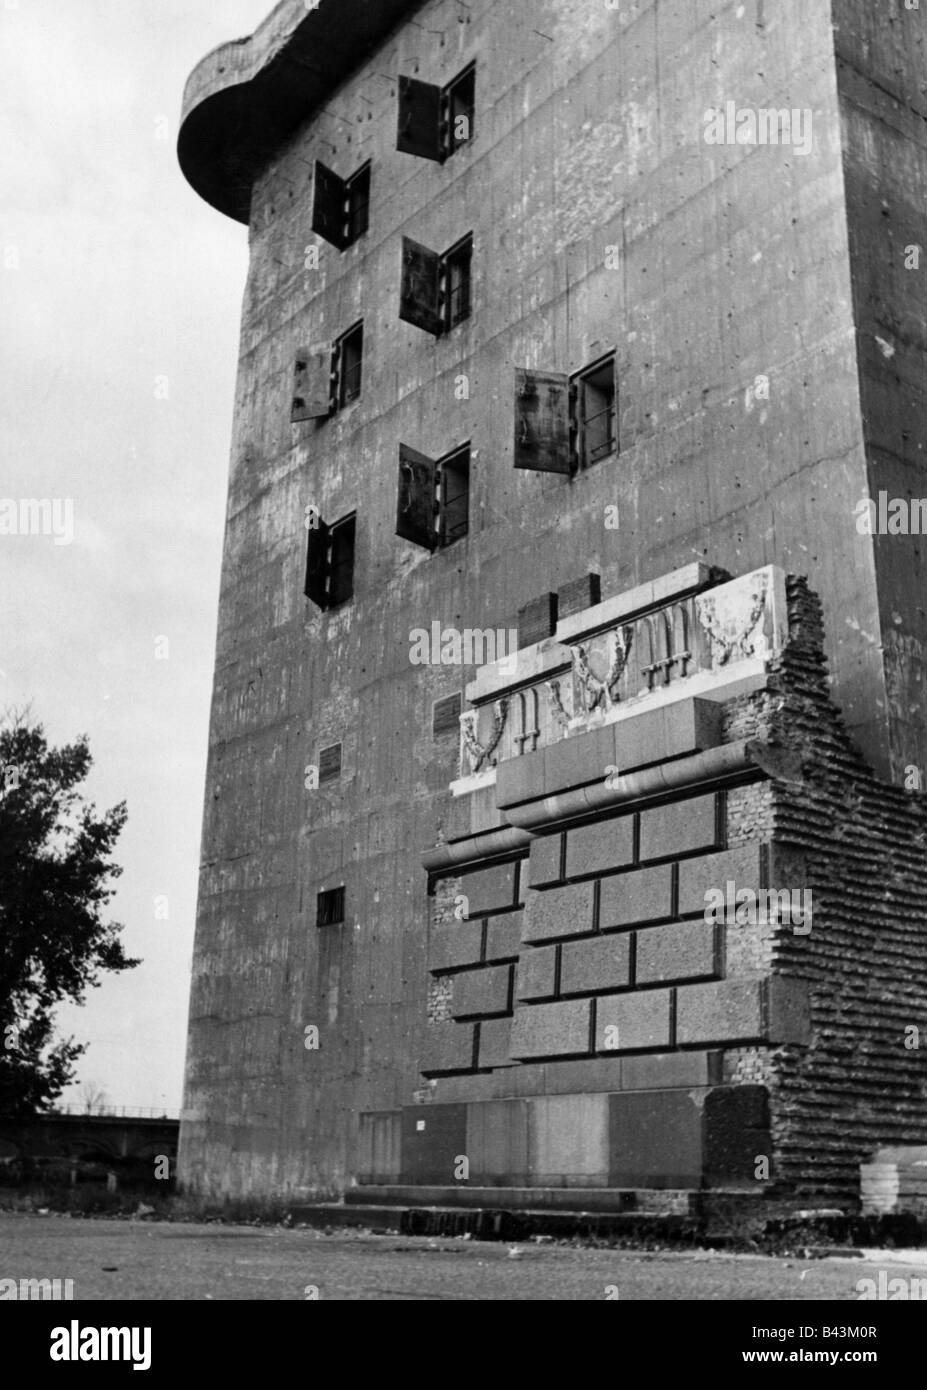 events, Second World War / WWII, Germany, aerial defence, anti-aircraft bunker at the zoo, Berlin, Additional-Rights - Stock Image